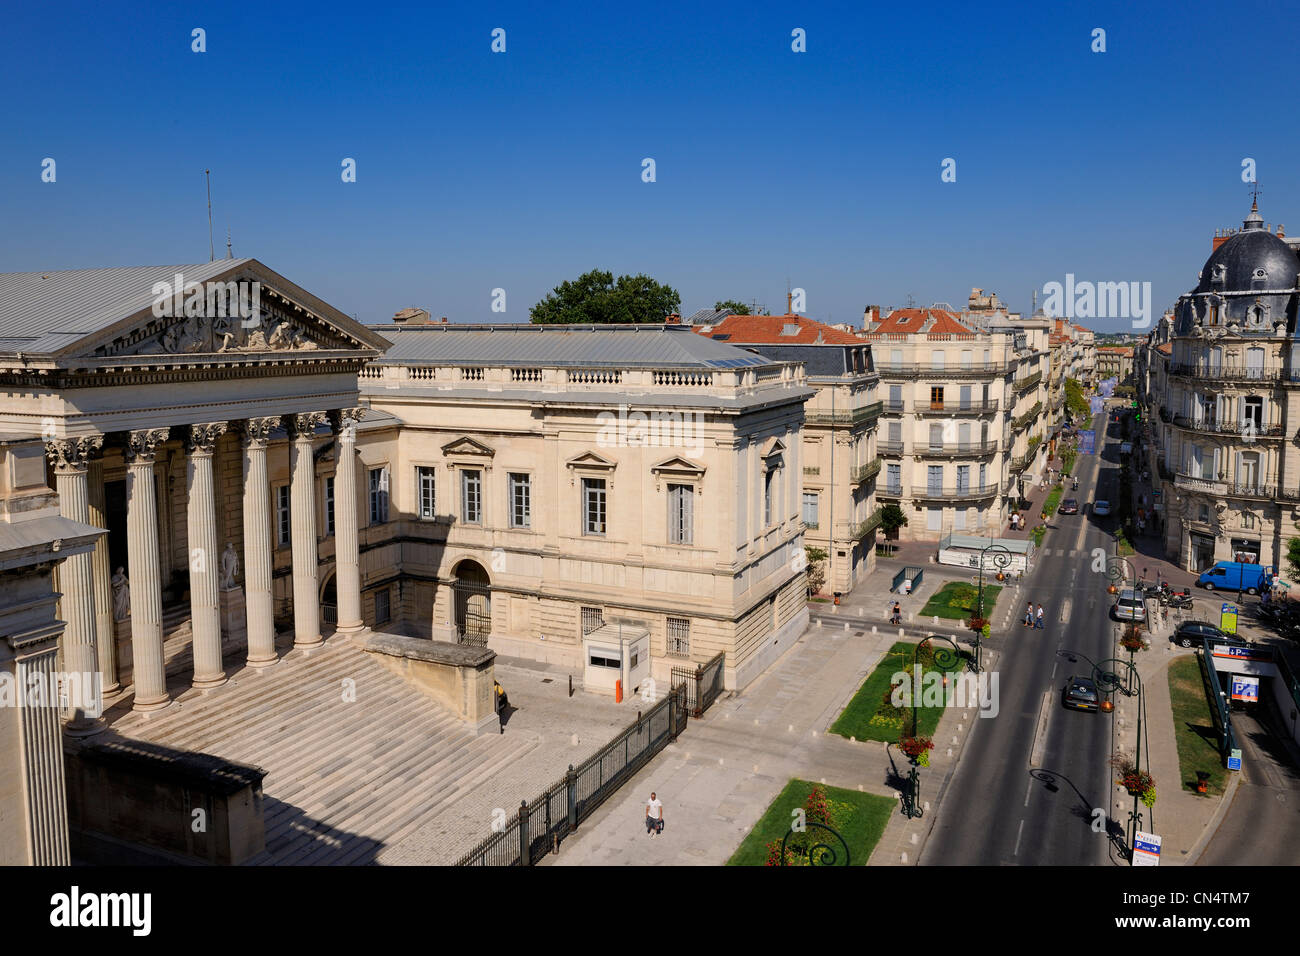 France, Herault, Montpellier, the Ecusson, the Courthouse on Foch street - Stock Image